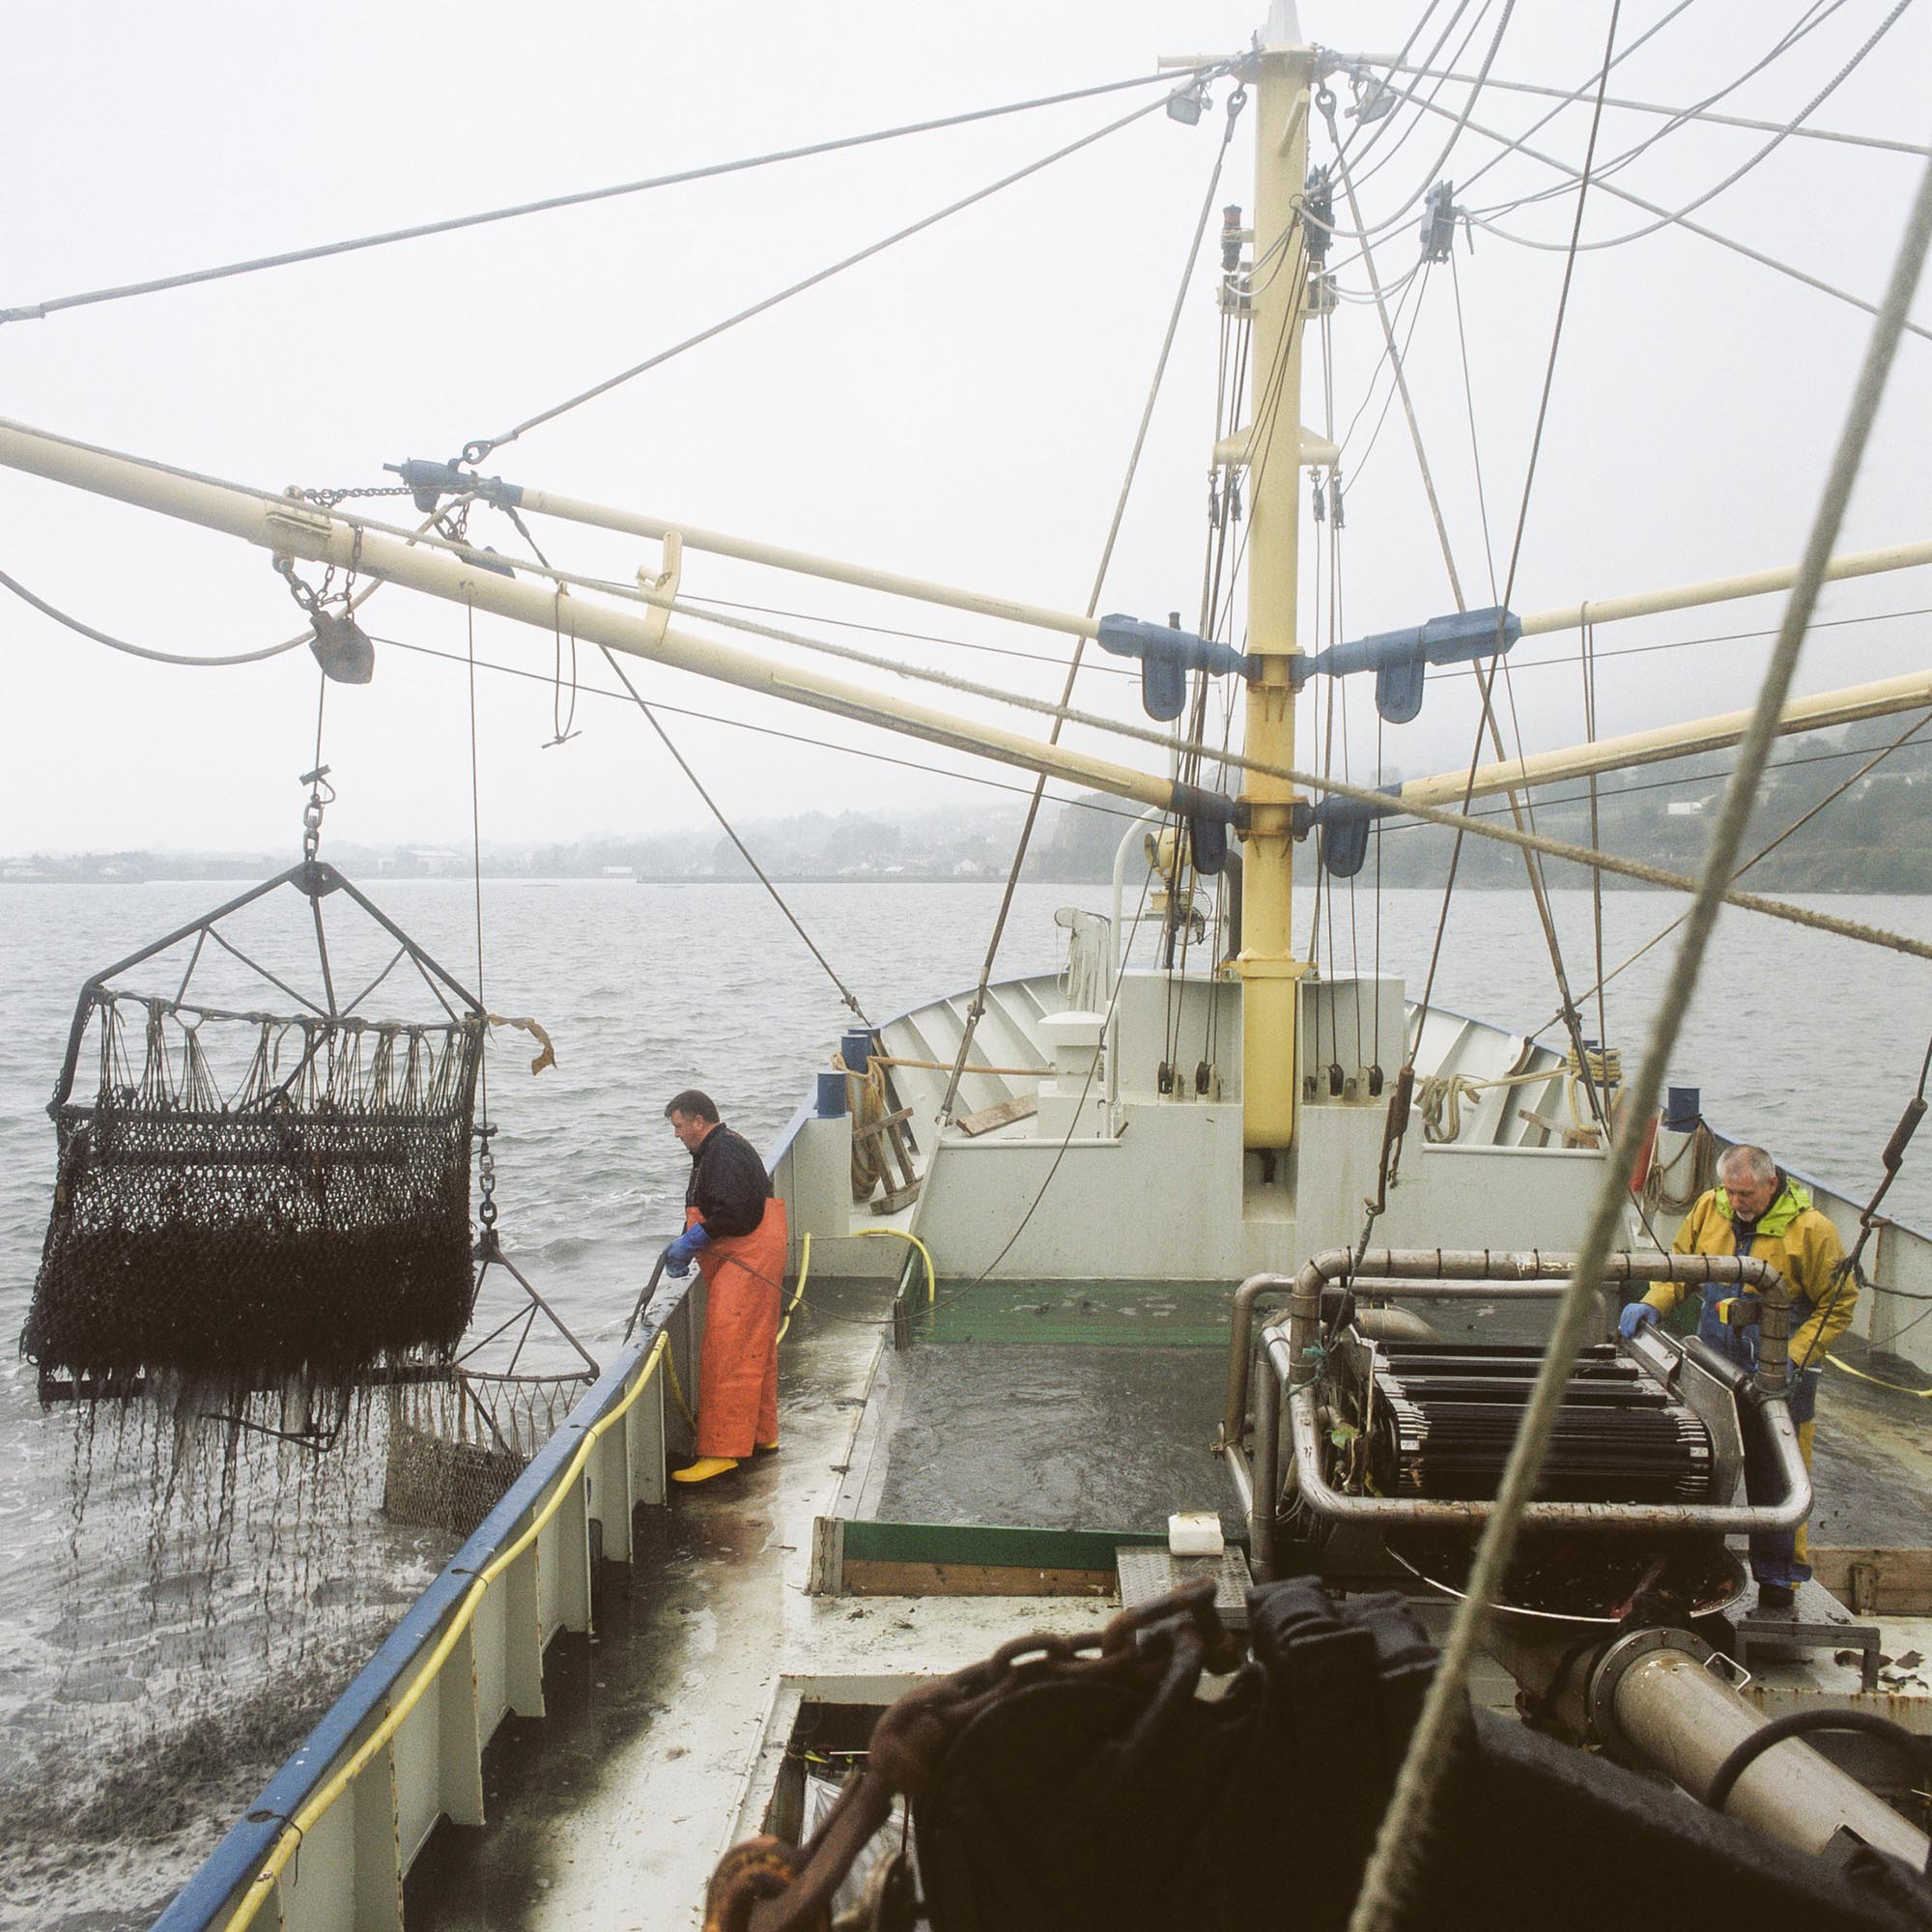 John Graham and Michael Curran fish for mussels in Carlingford Lough aboard a UK registered boat